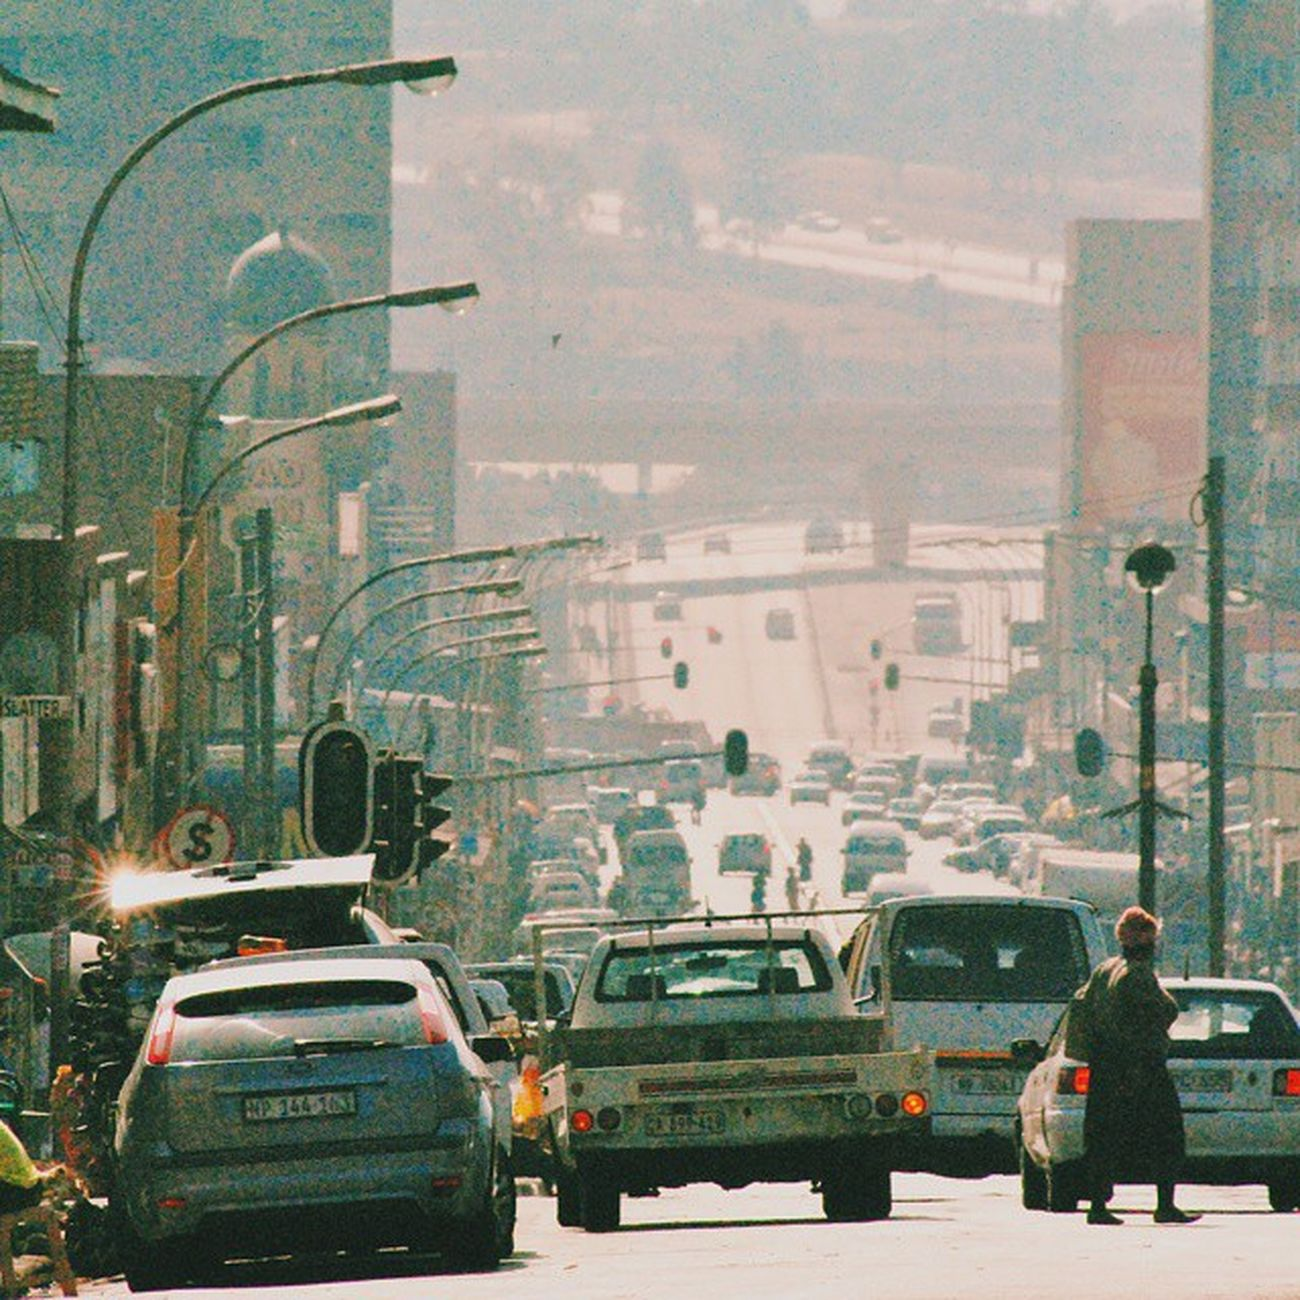 Let your roots sink in so that the earth does not forget you. Pietermaritzburg Home Theplaceilove Love southafrica street streetphotography nikonphotography ambiance igerssouthafrica vsco vscophile africa shoot2kill igmasters hot_shotz traffic quote roots instagood dope city explore capturelife beautiful spring october 051014